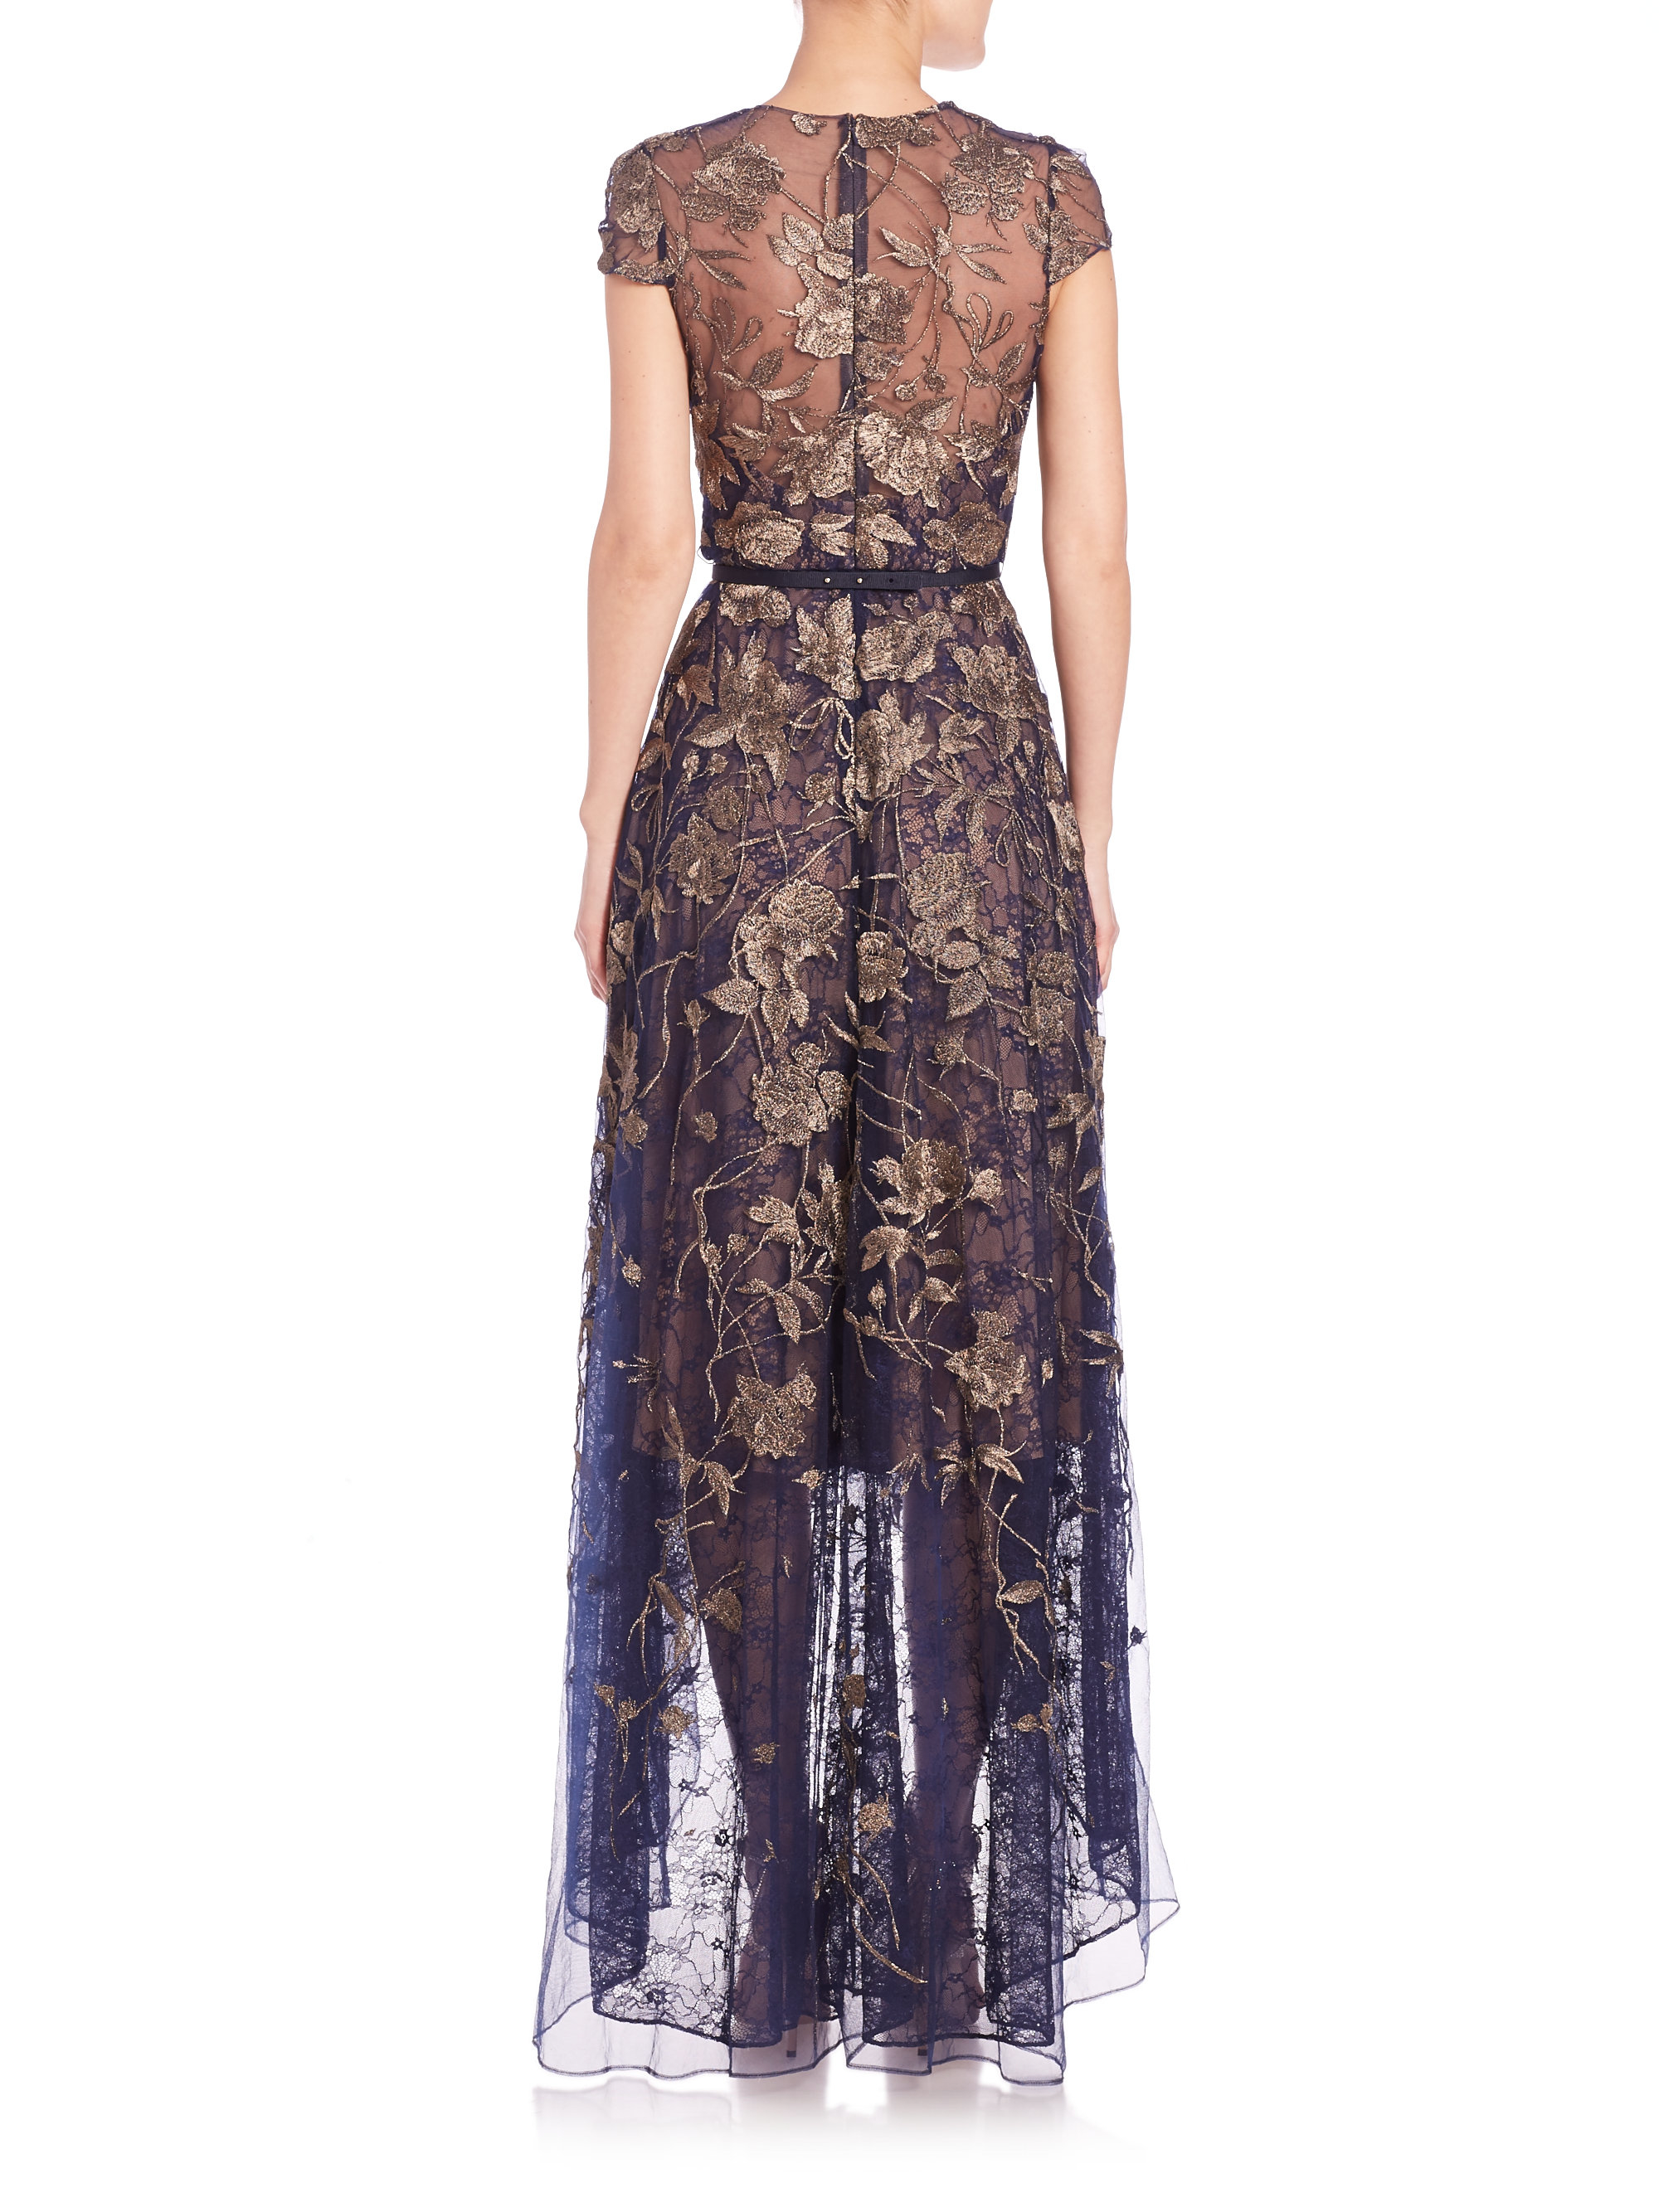 24df4a53366 Marchesa notte Embroidered Tulle Gown in Metallic - Lyst